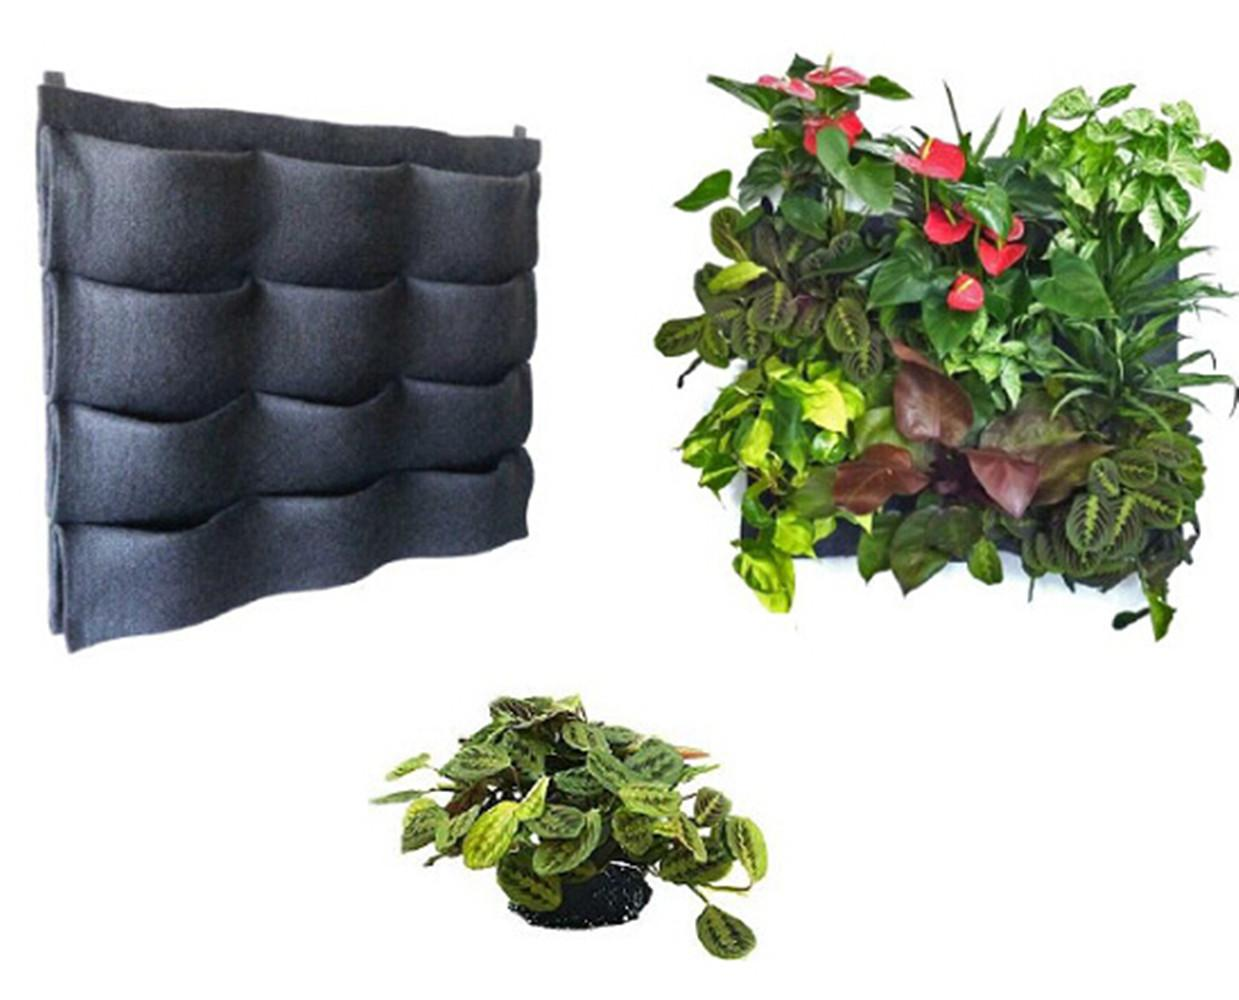 2017 12 Pocket Black Felt Vertical Planter Living Garden Wall